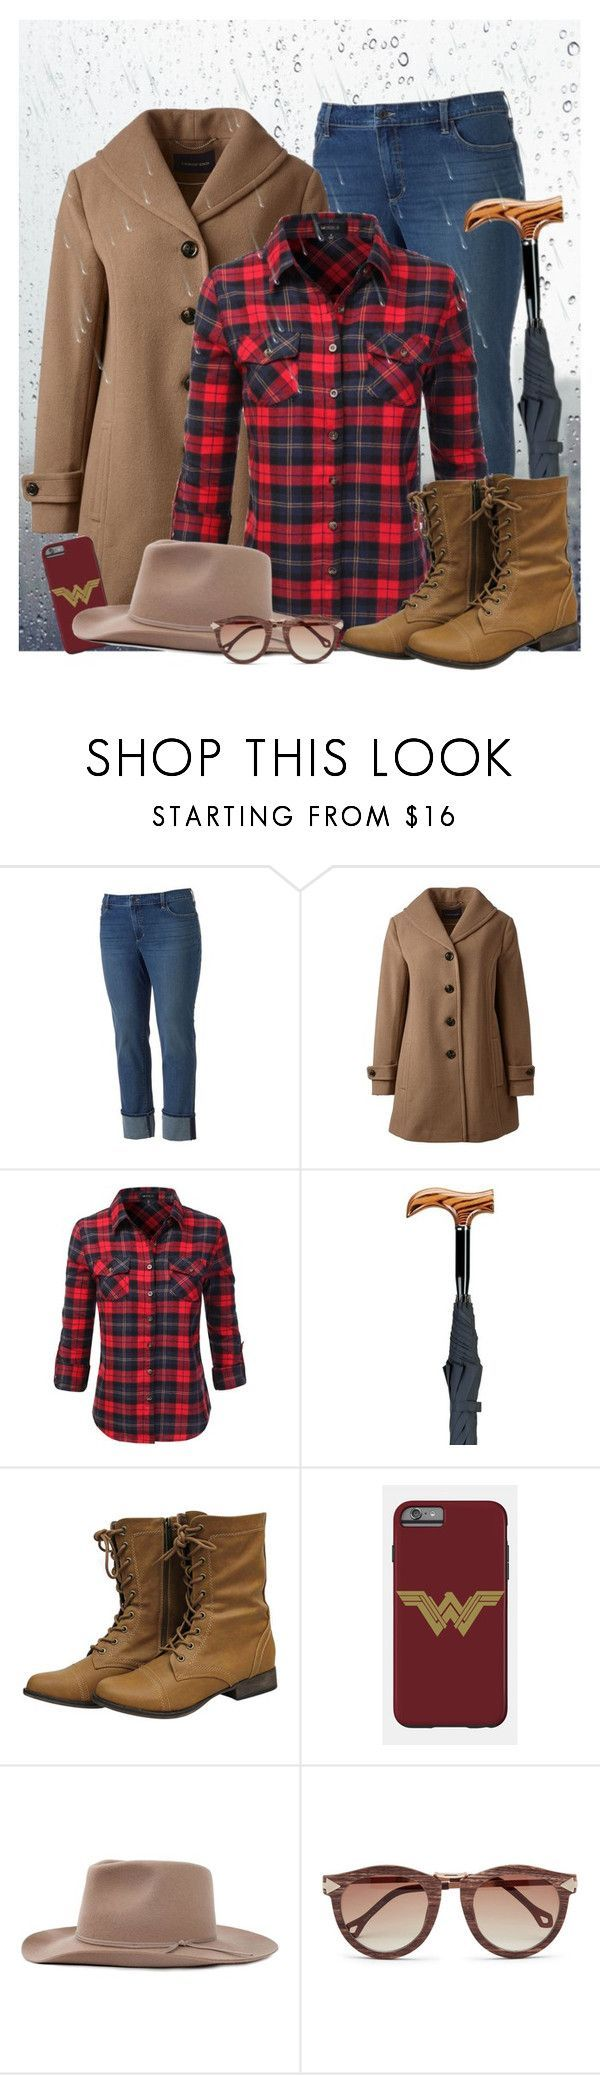 #Barro #Croft #Day #featuring #jazzola19 #Layering #Polyvore #Rainy #Rainy Day Outfit flannel Rainy Day Layering by jazzola-19 ❤ liked on Polyvore featuring Croft & Barro...        Rainy Day Layering by jazzola-19 ❤ liked on Polyvore featuring Croft & Barrow, Lands' End and Doublju #rainydayoutfitforwork